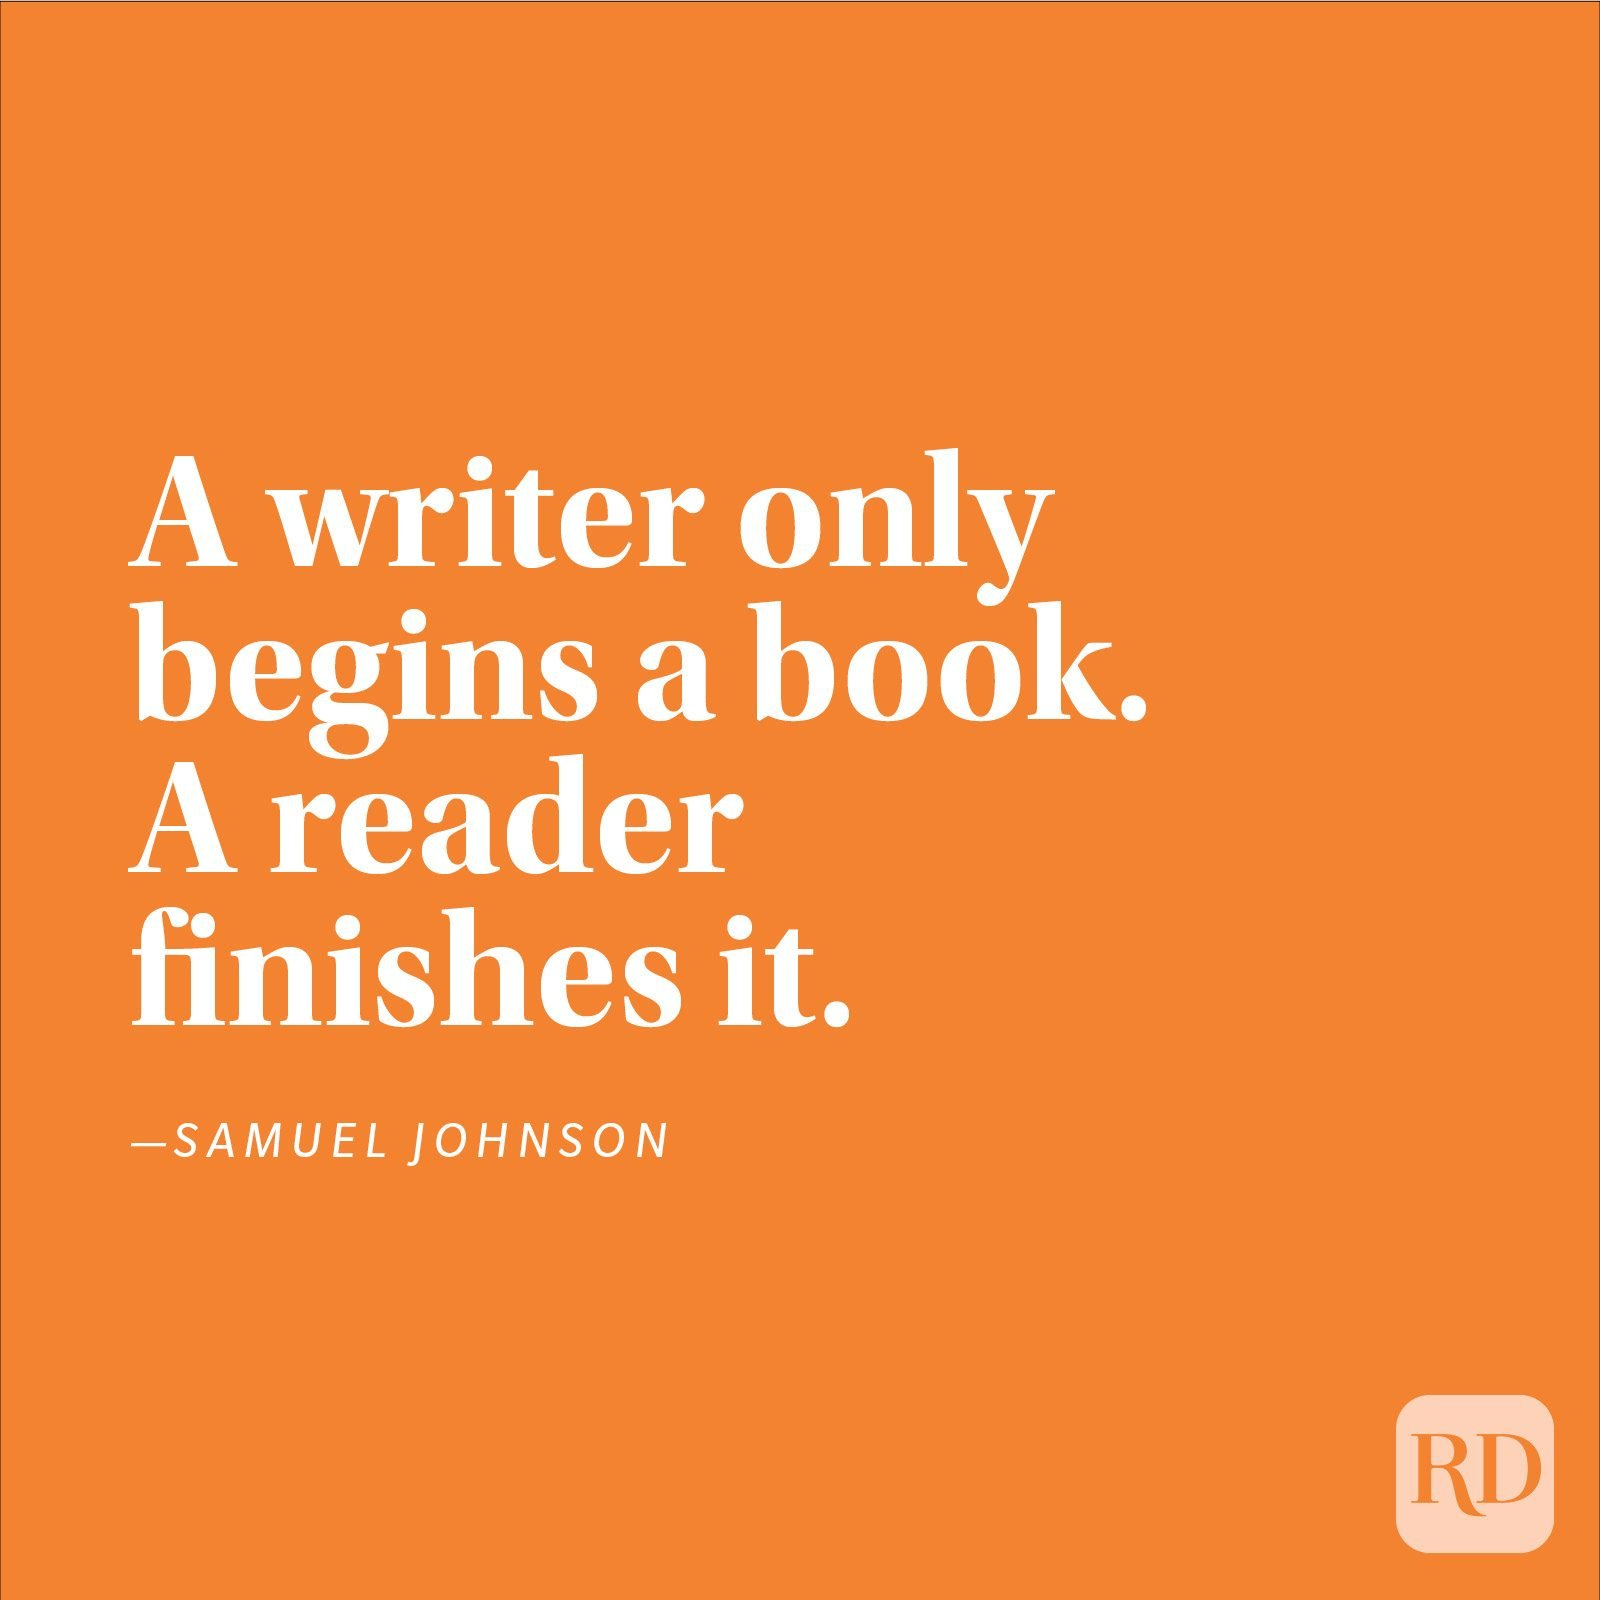 """A writer only begins a book. A reader finishes it."" —Samuel Johnson"